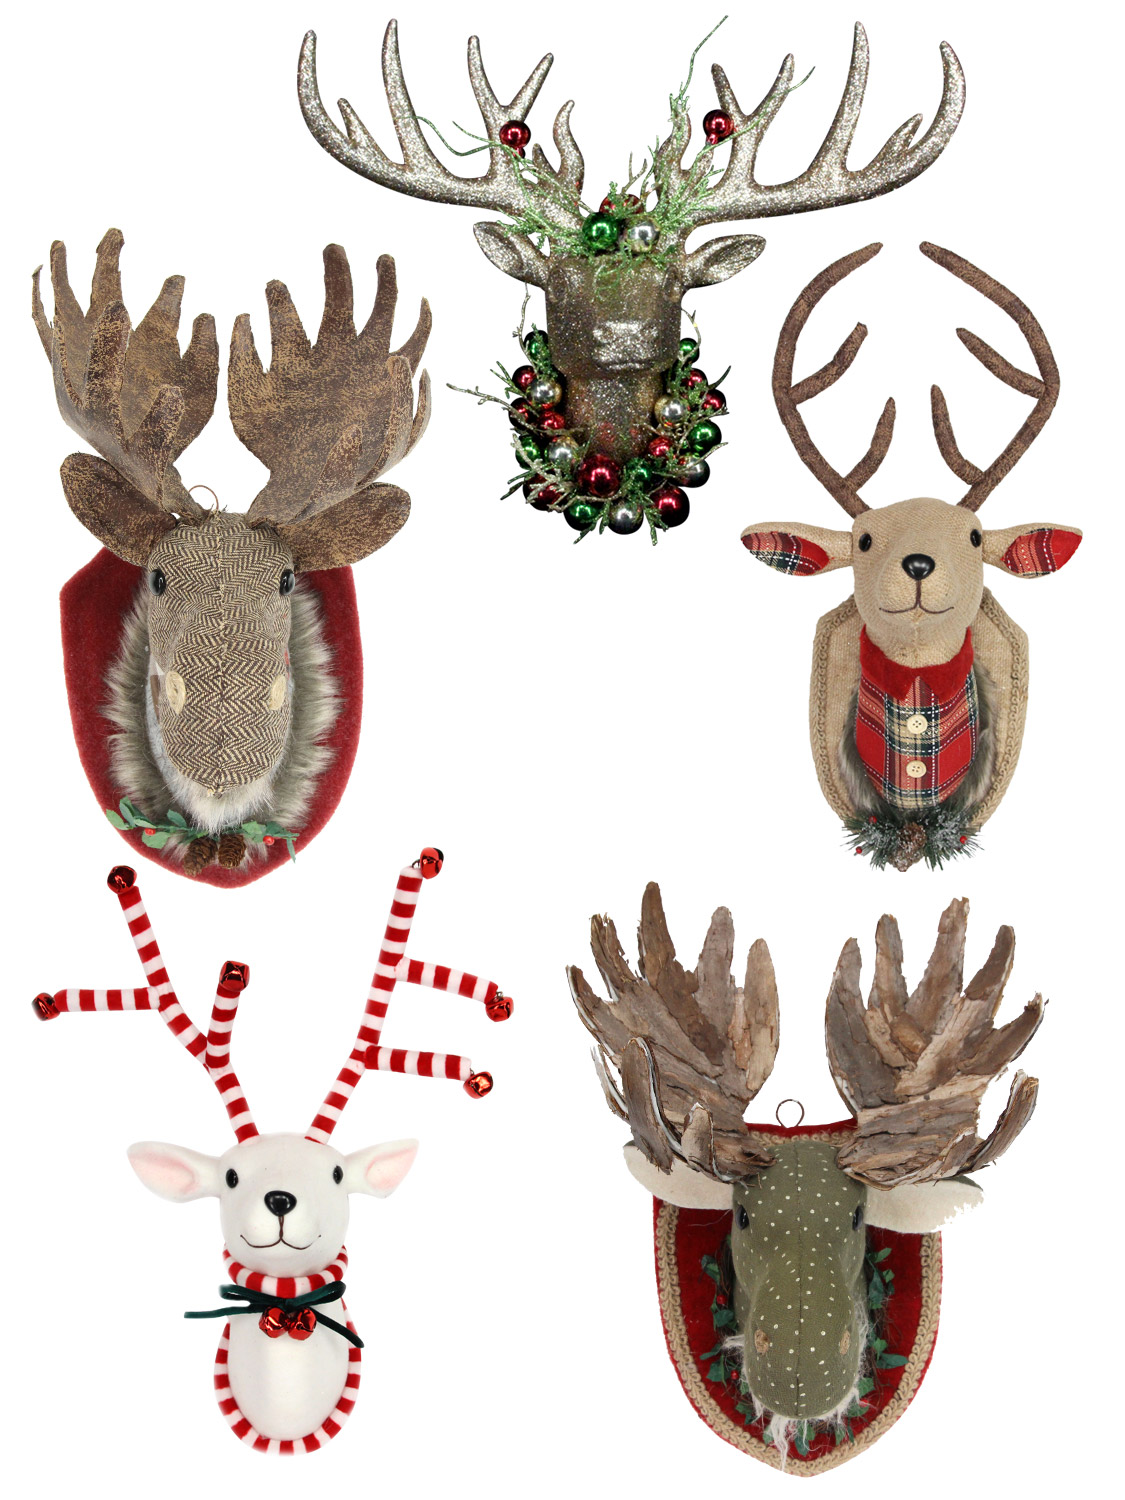 Christmas Raindeer.Details About Gisela Graham Fabric Moose Stag Christmas Reindeer Hanging Head Wall Plaque